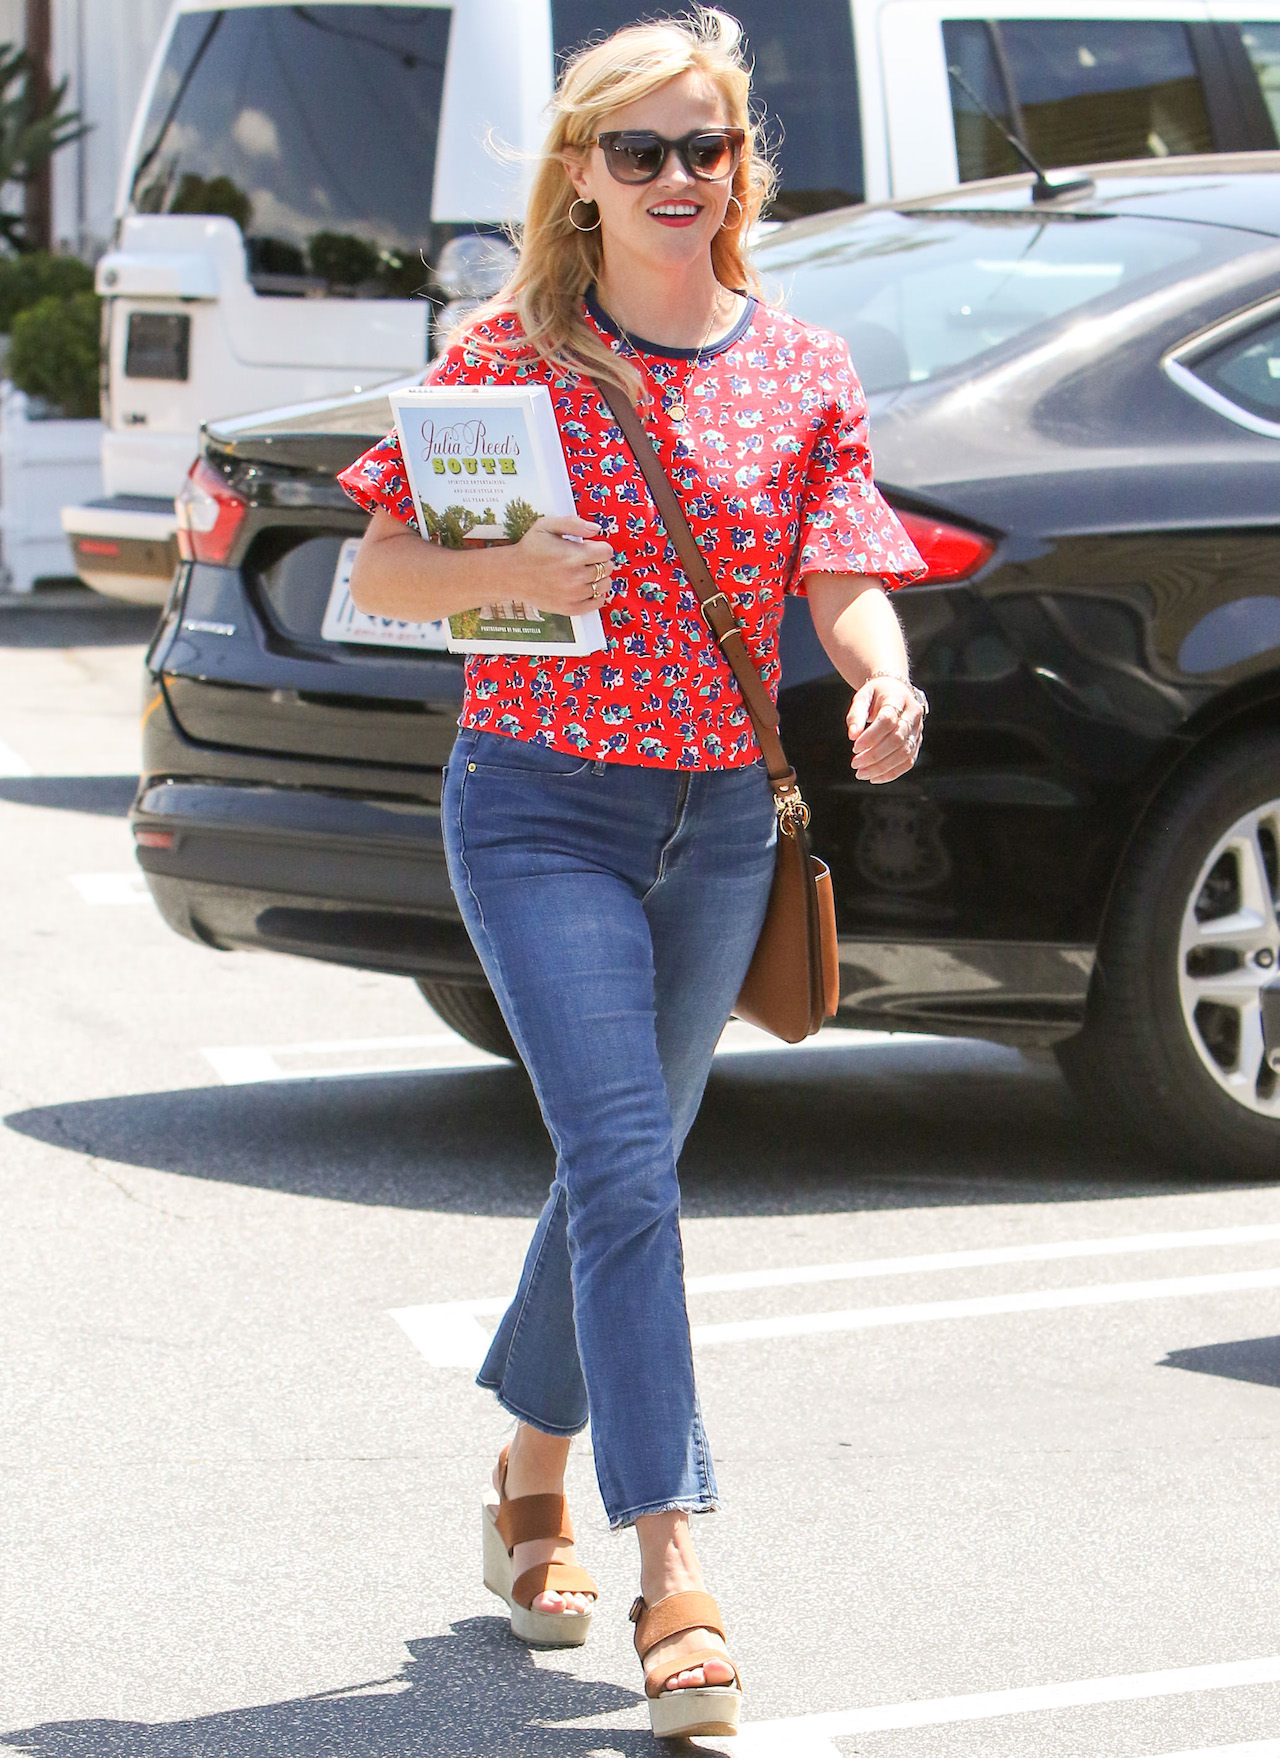 Reese Witherspoon walking down the street in jeans and a red shirt carrying a novel